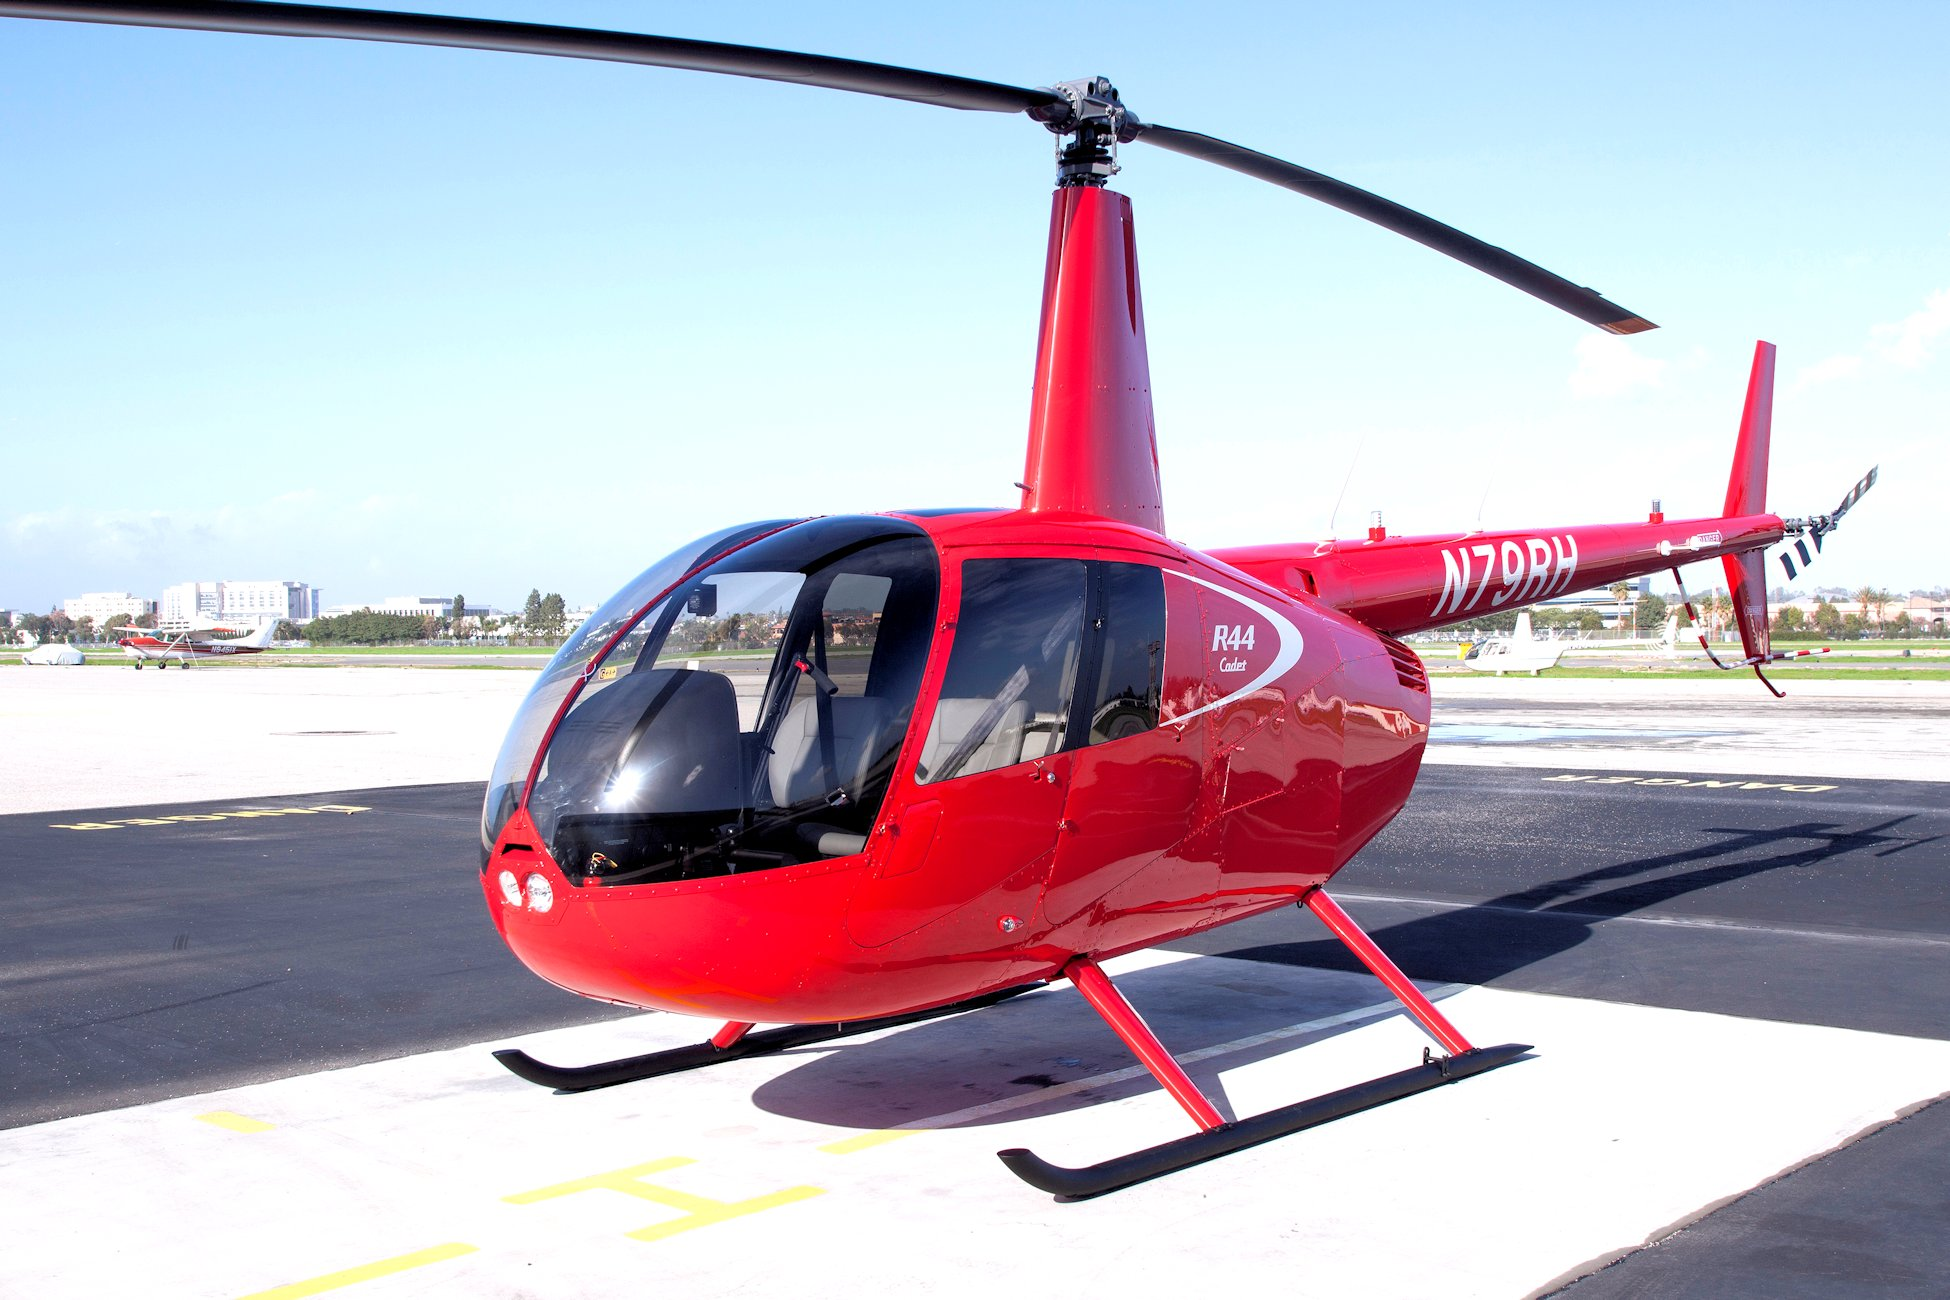 Robinson R44 Cadet 2 Seat Helicopter with Large Luggage Space and Low Operating Cost 1950x